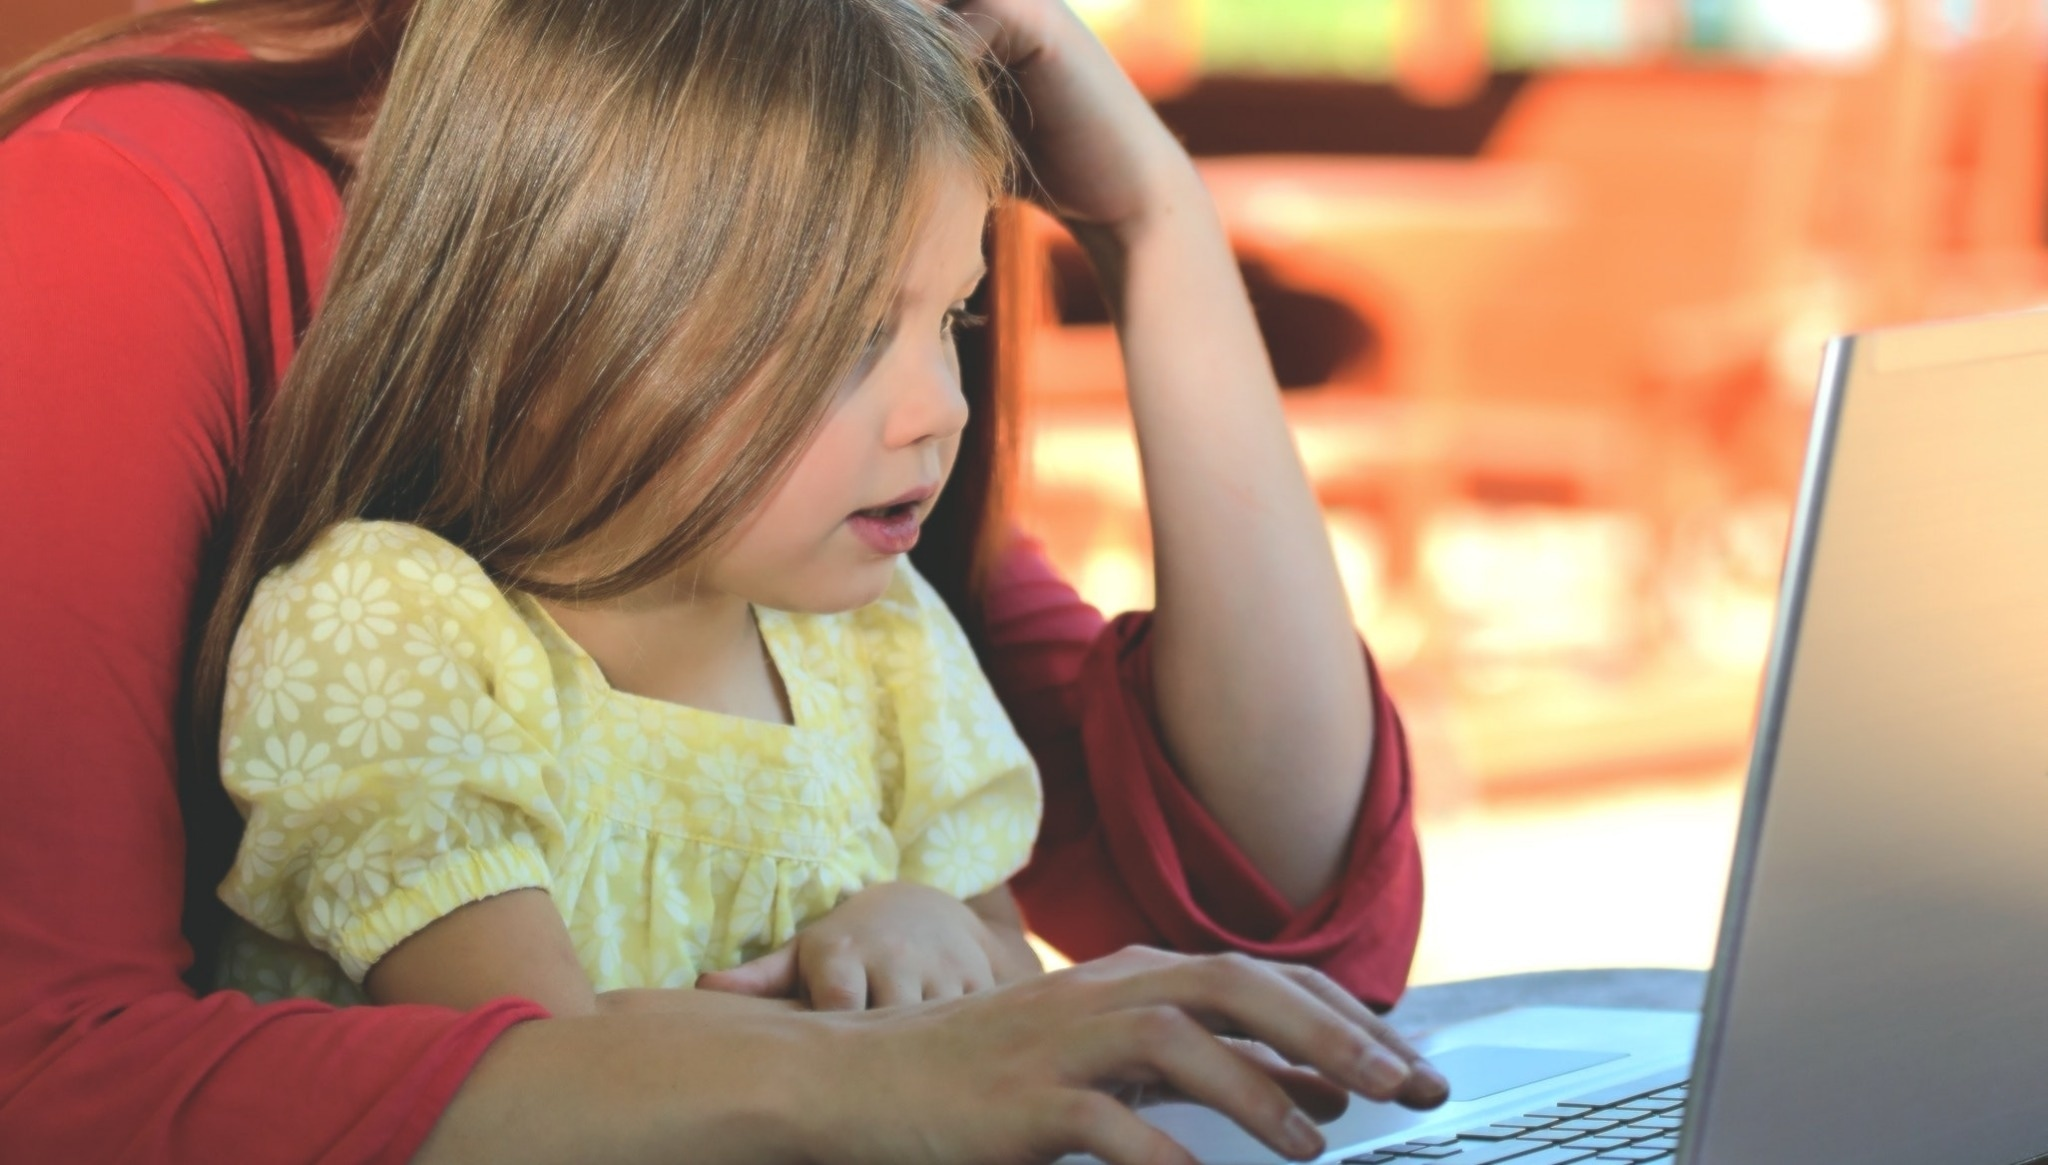 25 Free and Low-cost Coding Websites, Apps, and Courses for Kids